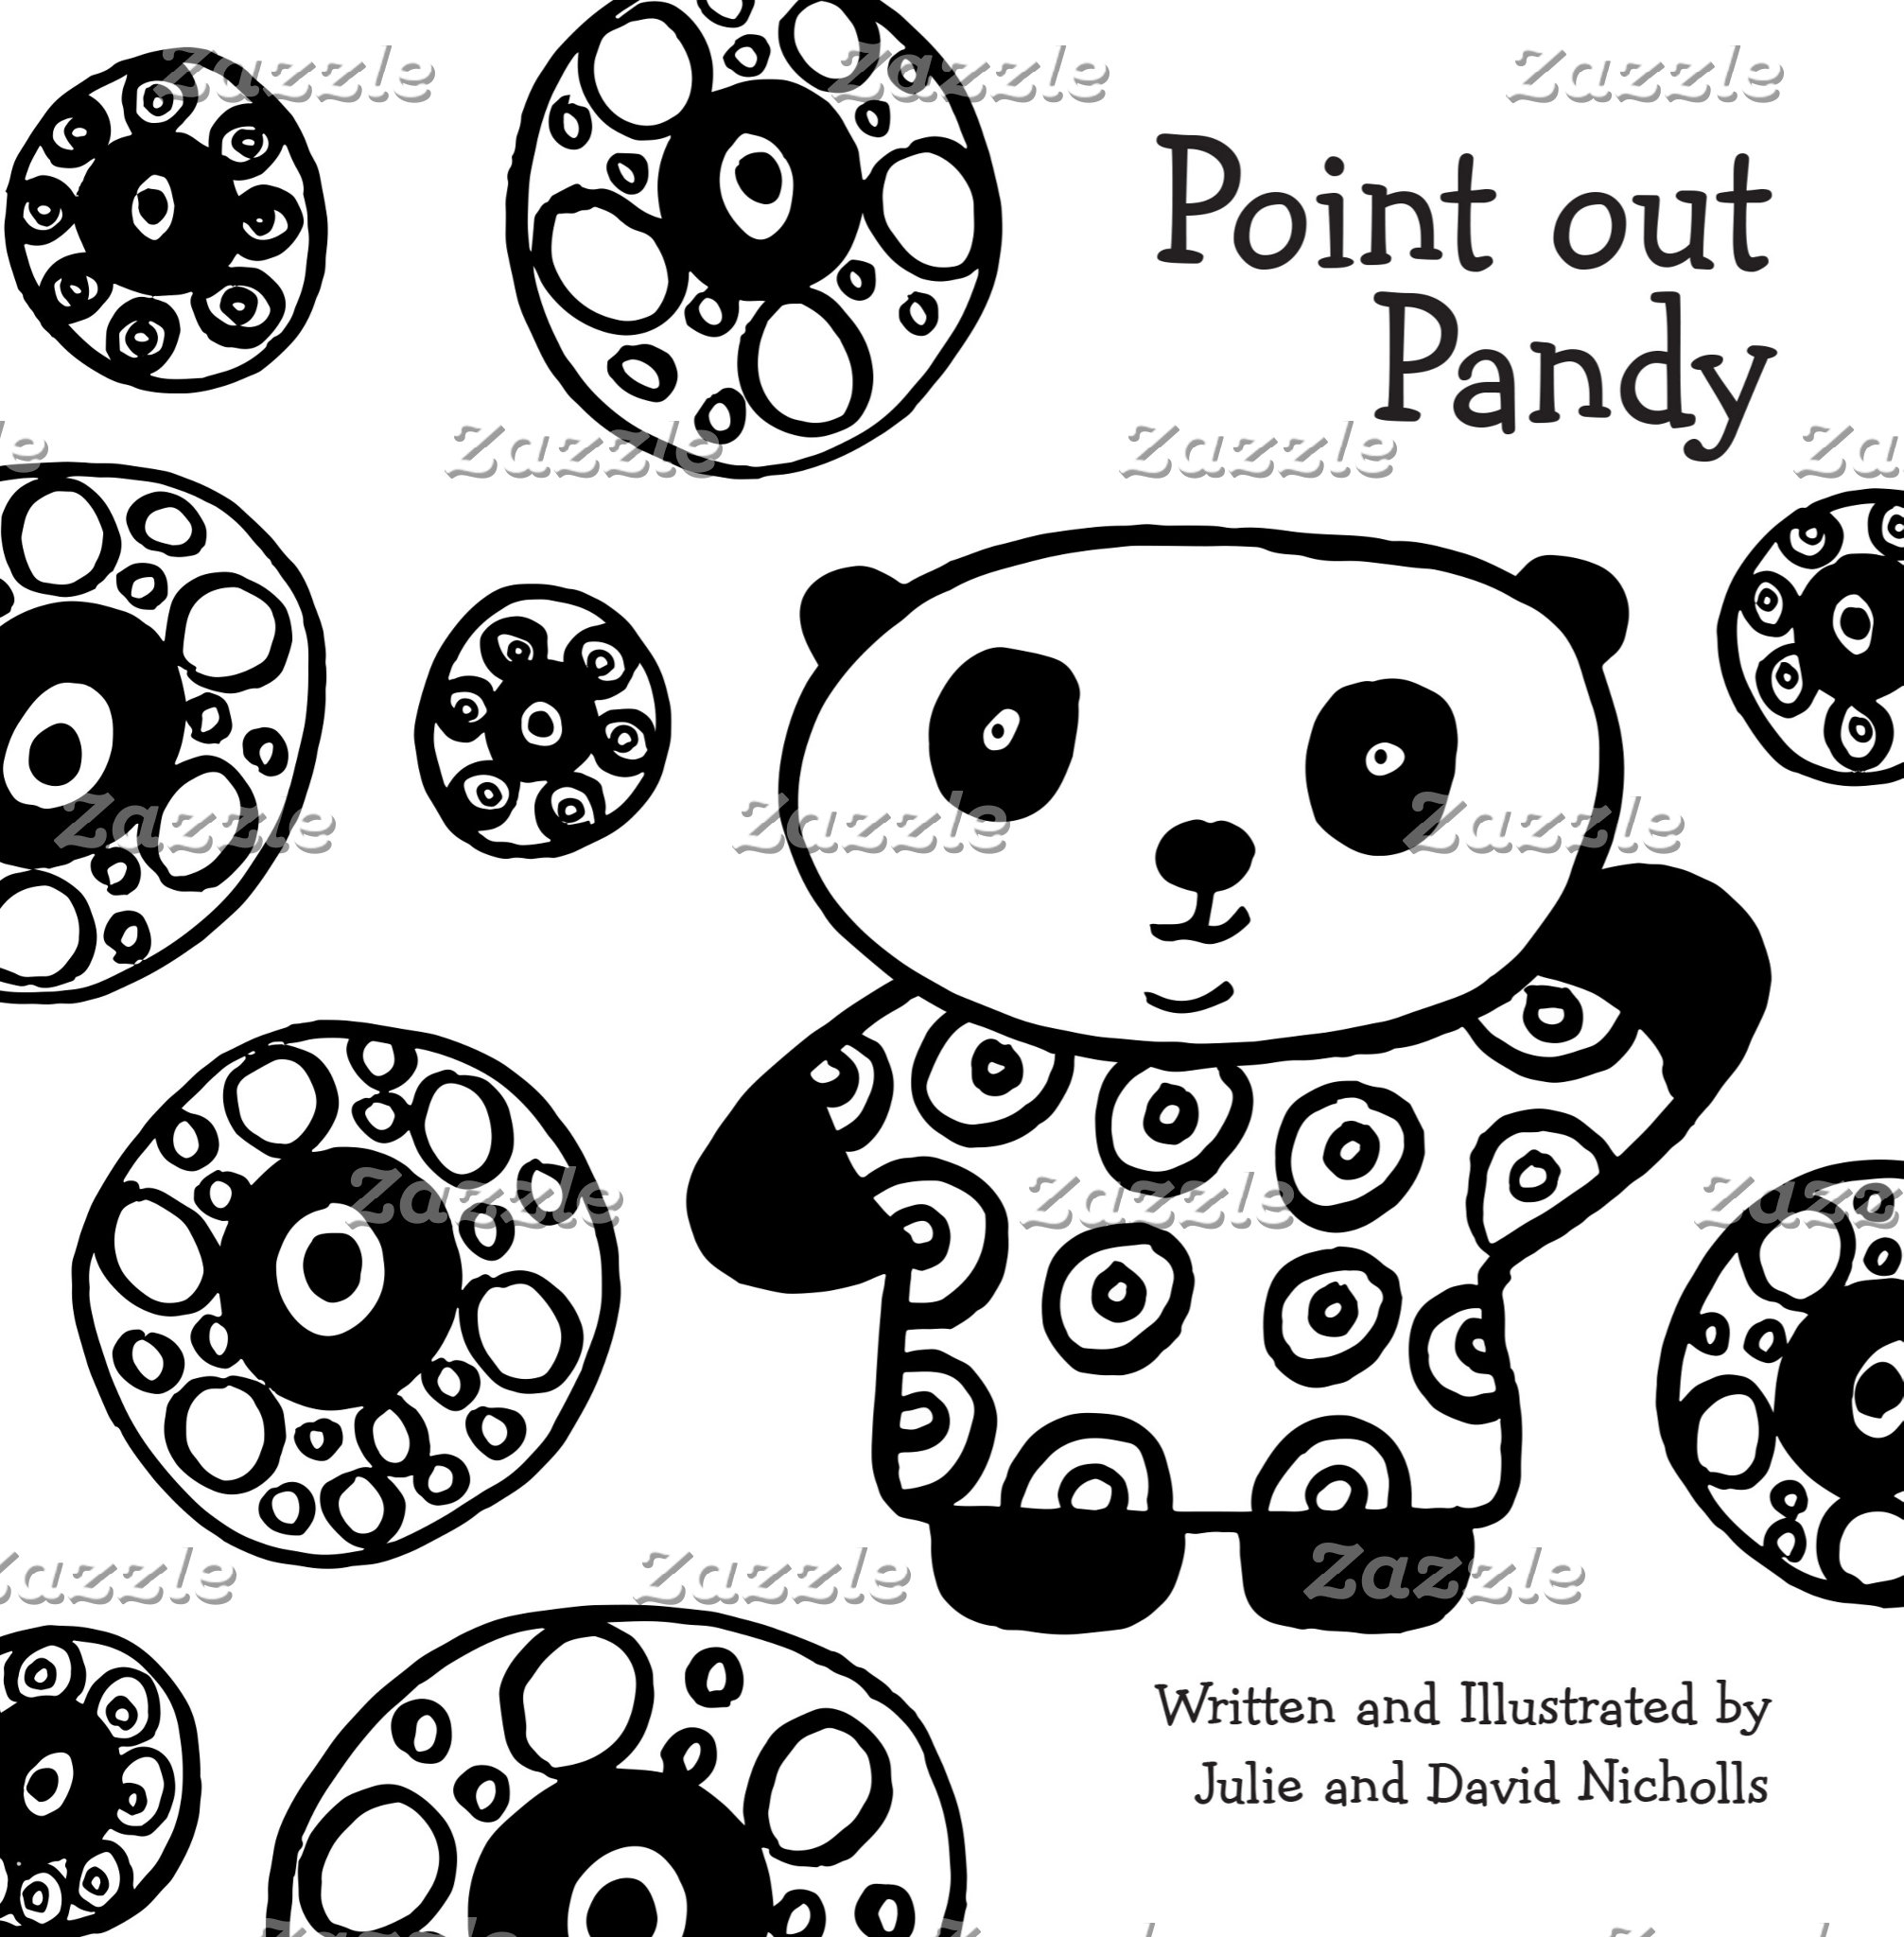 Point out Pandy